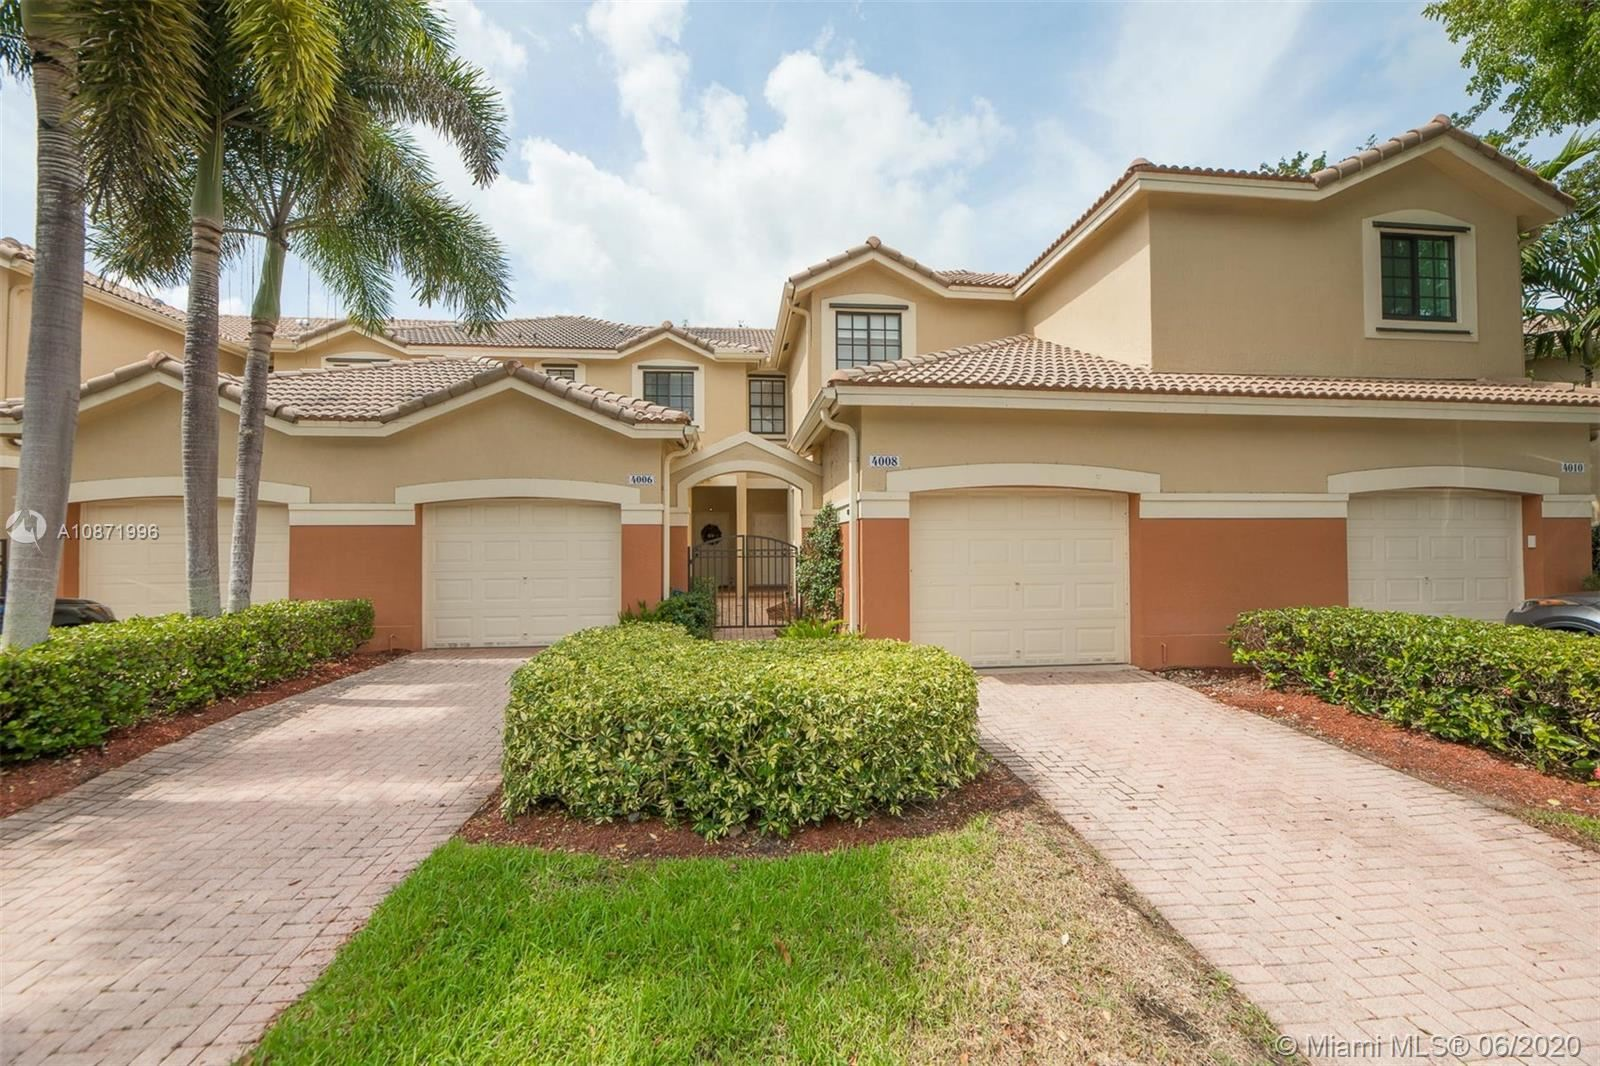 4008 Peppertree Dr, Weston, FL 33332 - #: A10871996